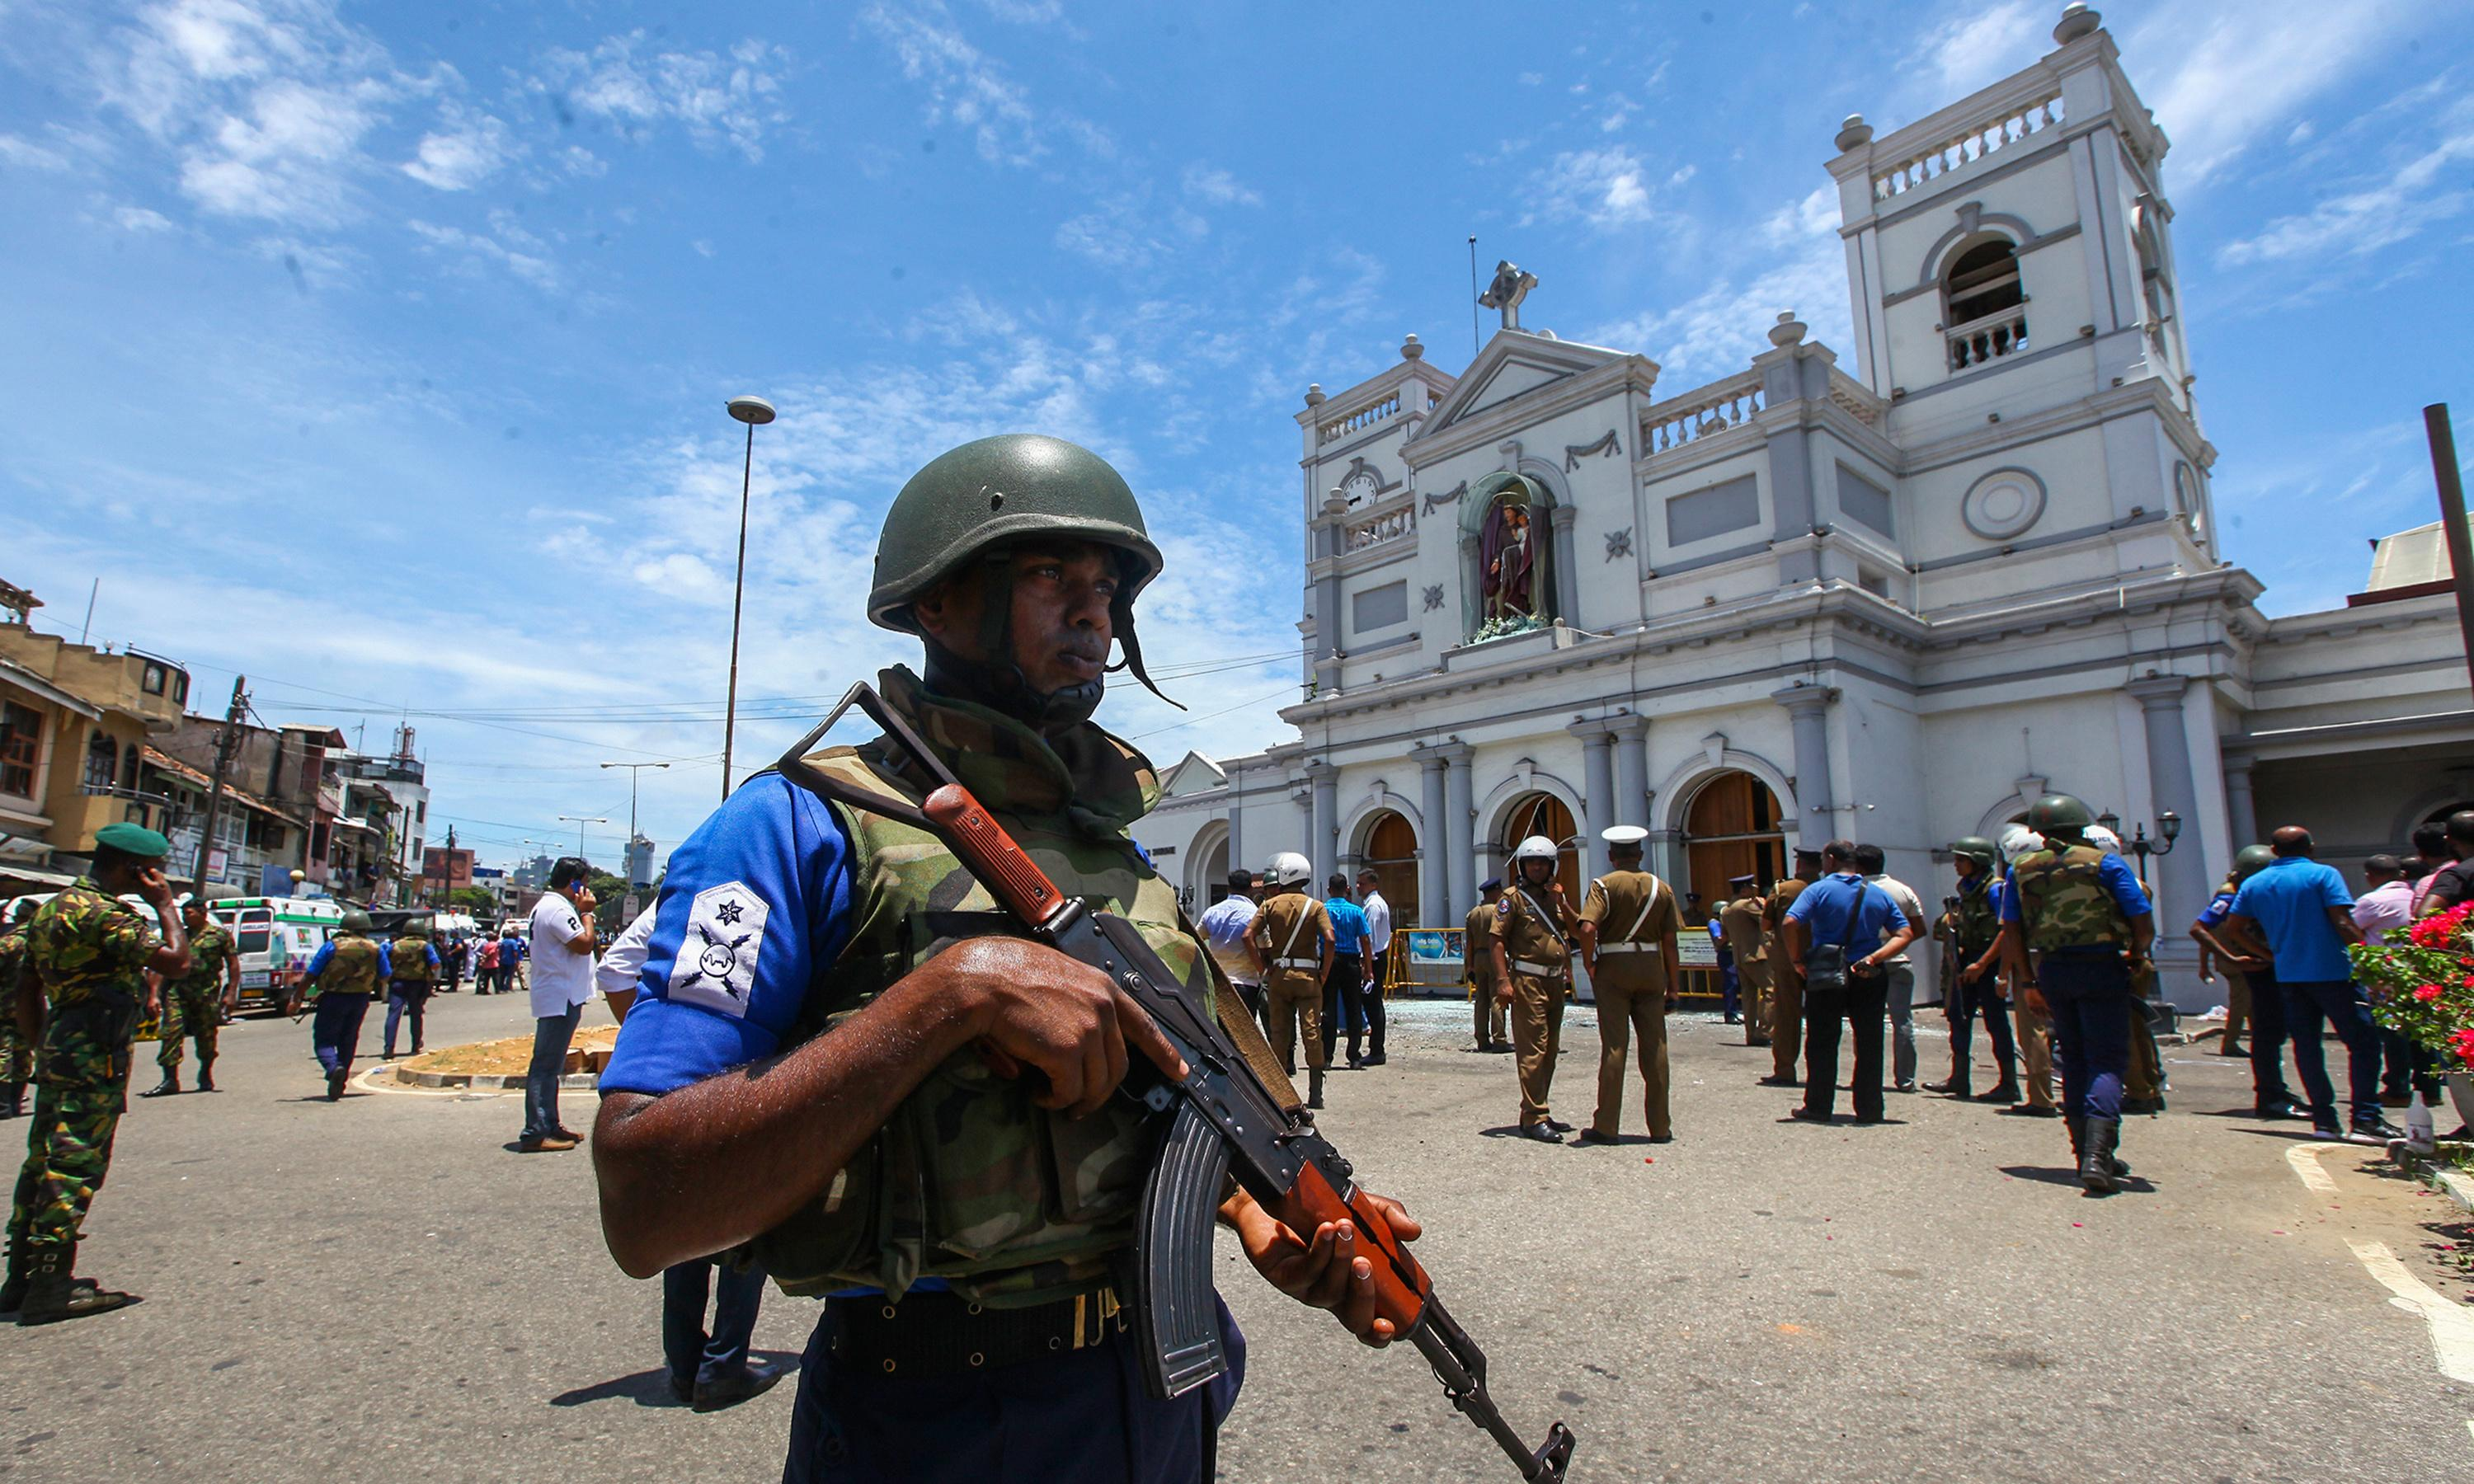 Sri Lanka bombings: doubts over Islamist group's potential role